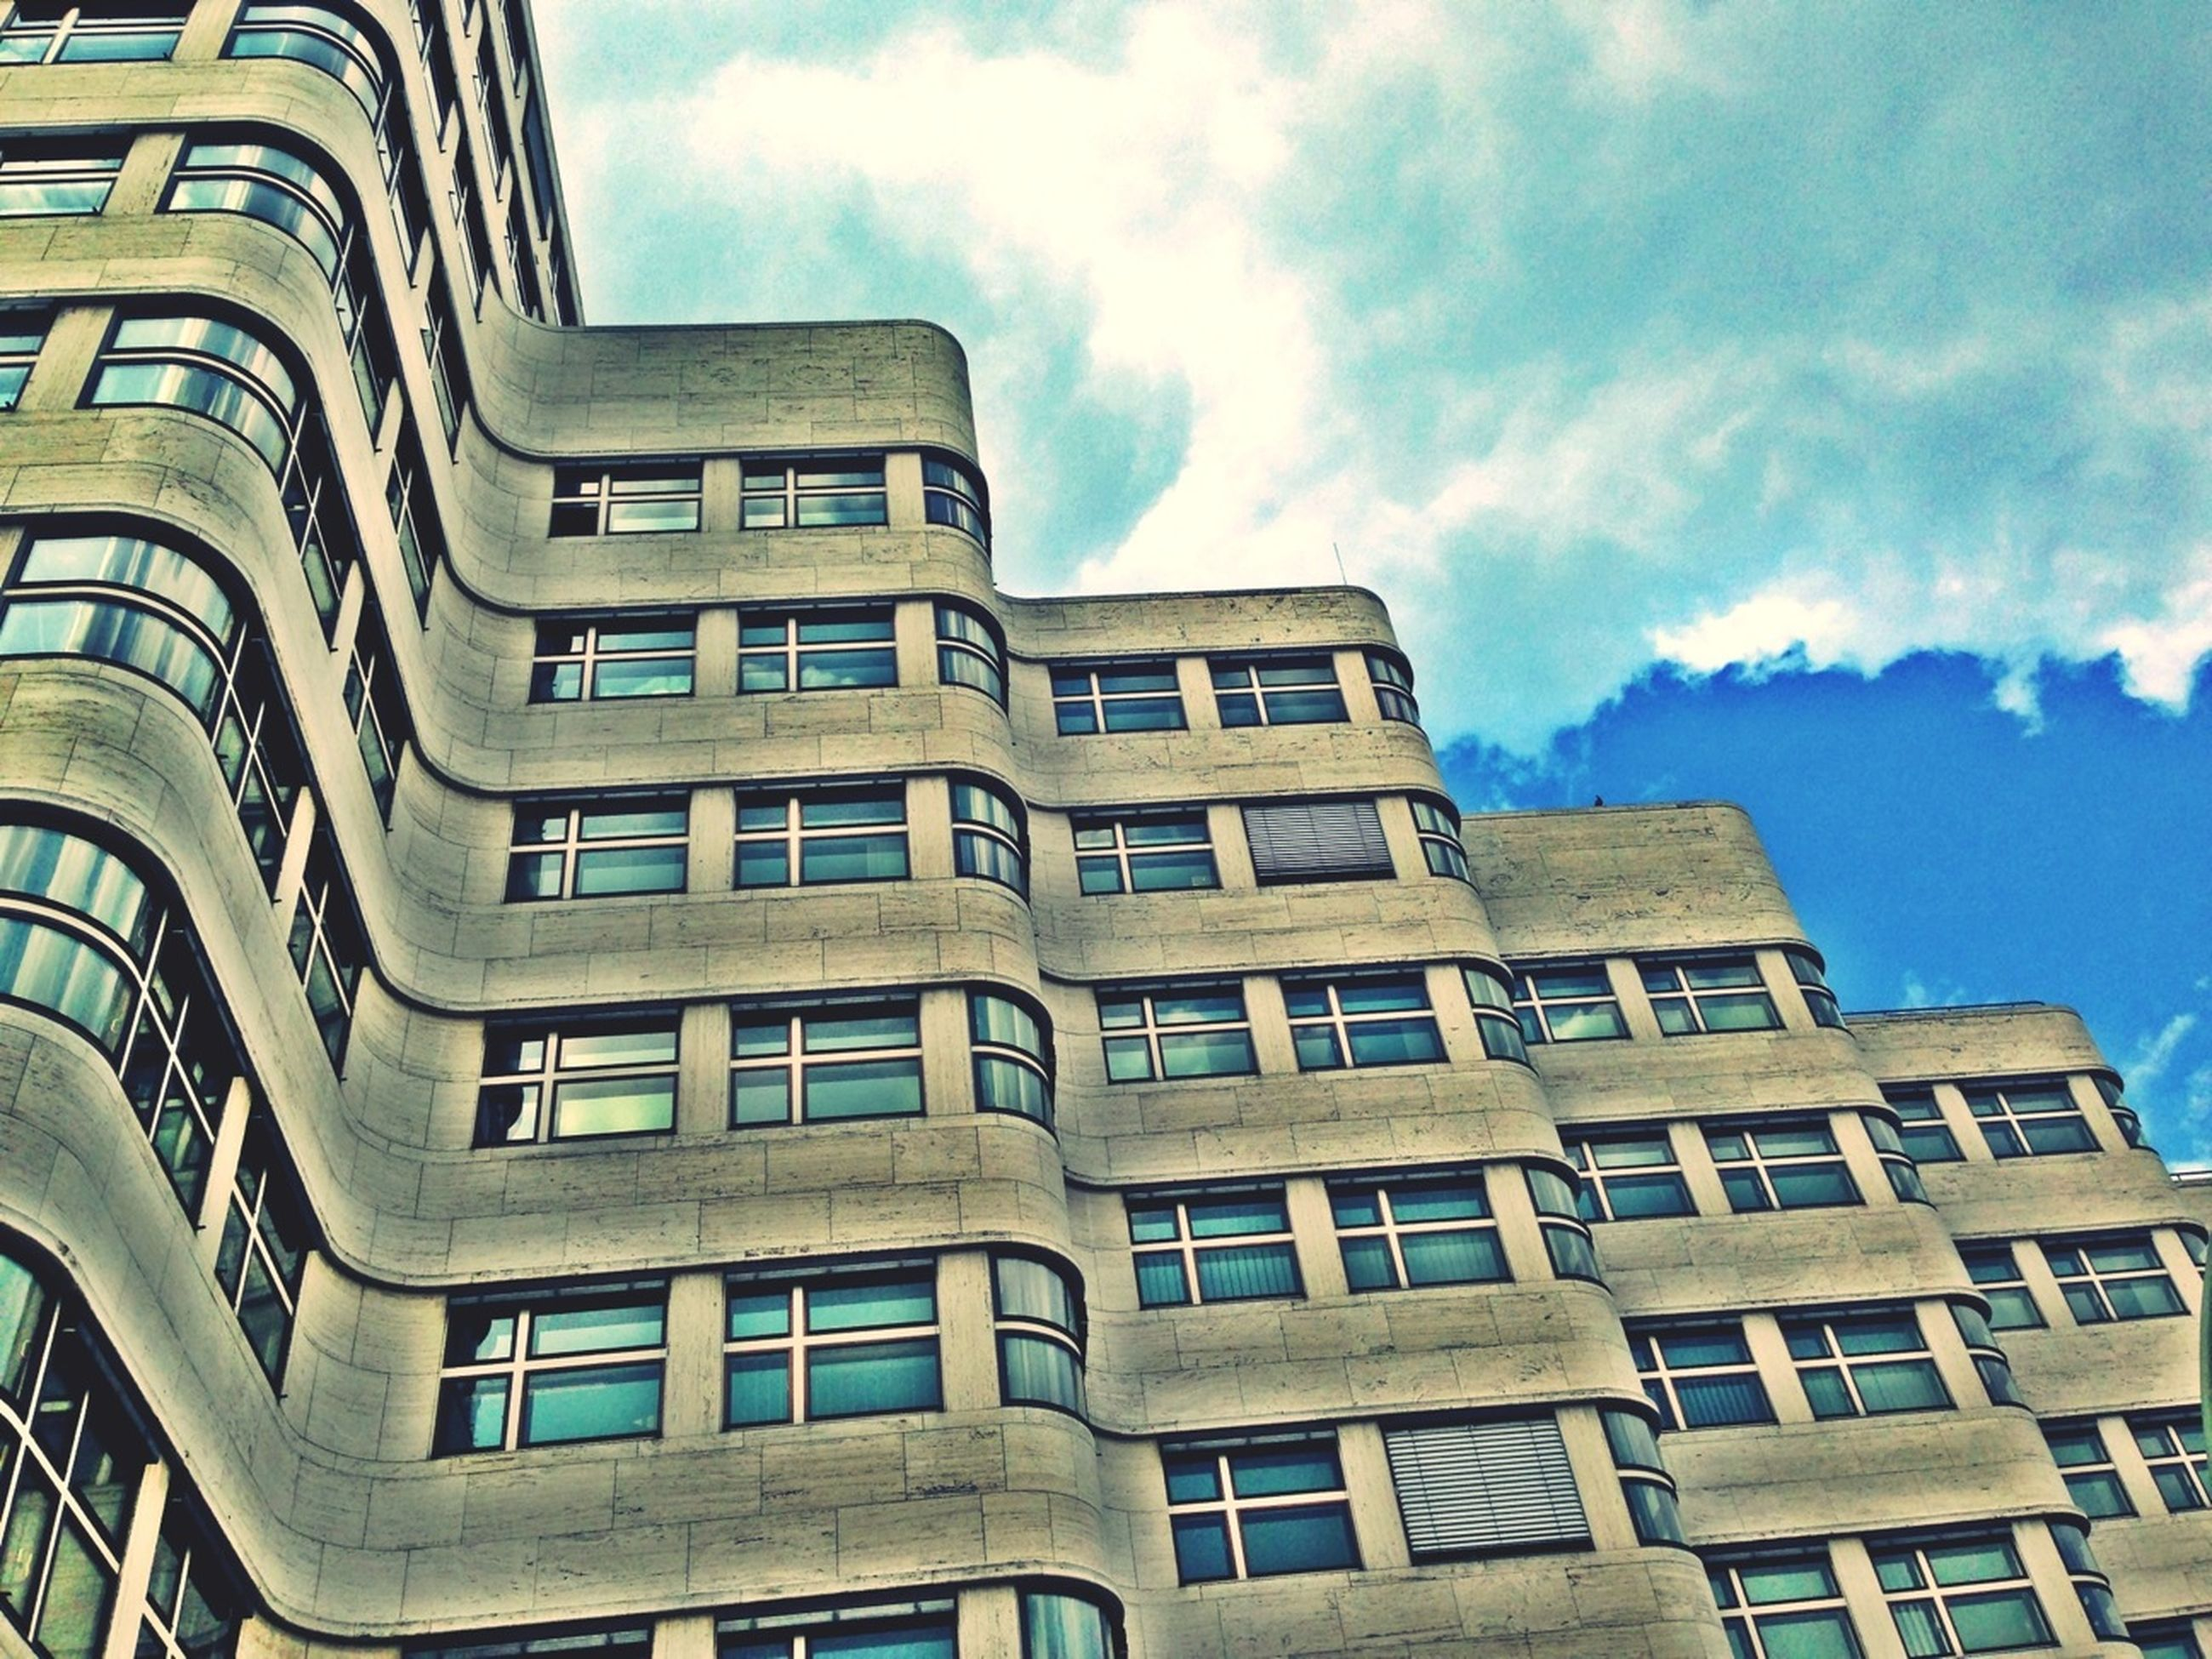 architecture, building exterior, built structure, low angle view, sky, window, building, residential building, residential structure, cloud - sky, city, balcony, cloud, day, apartment, no people, outdoors, glass - material, modern, cloudy